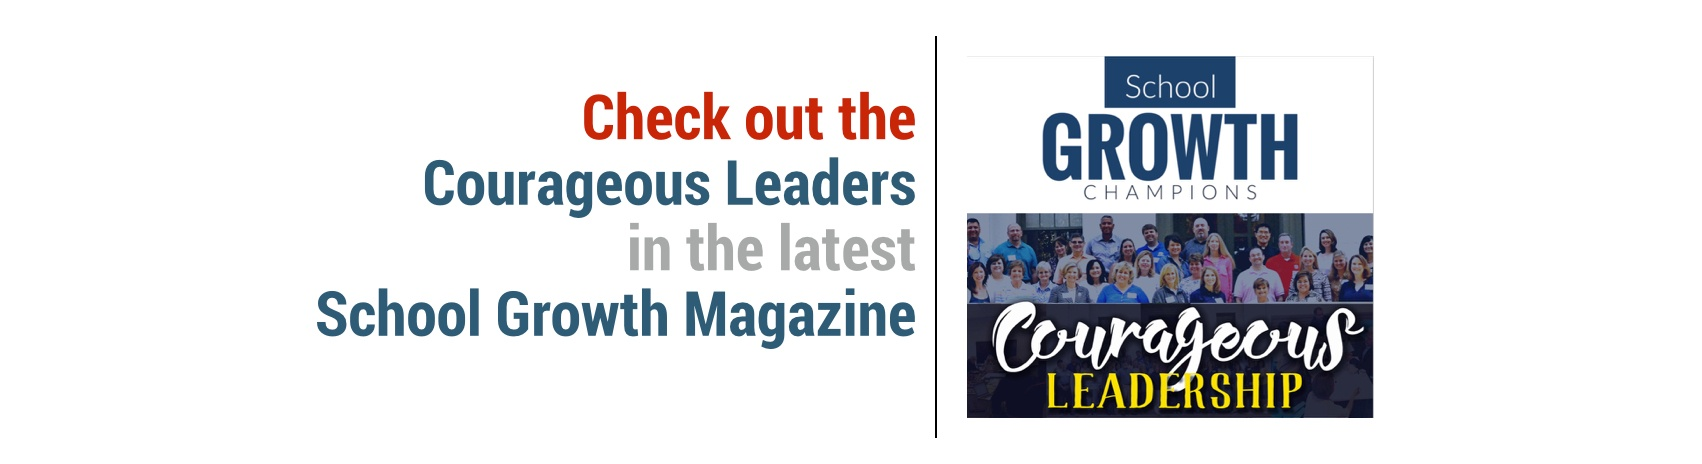 Check Out the School Growth Magazine